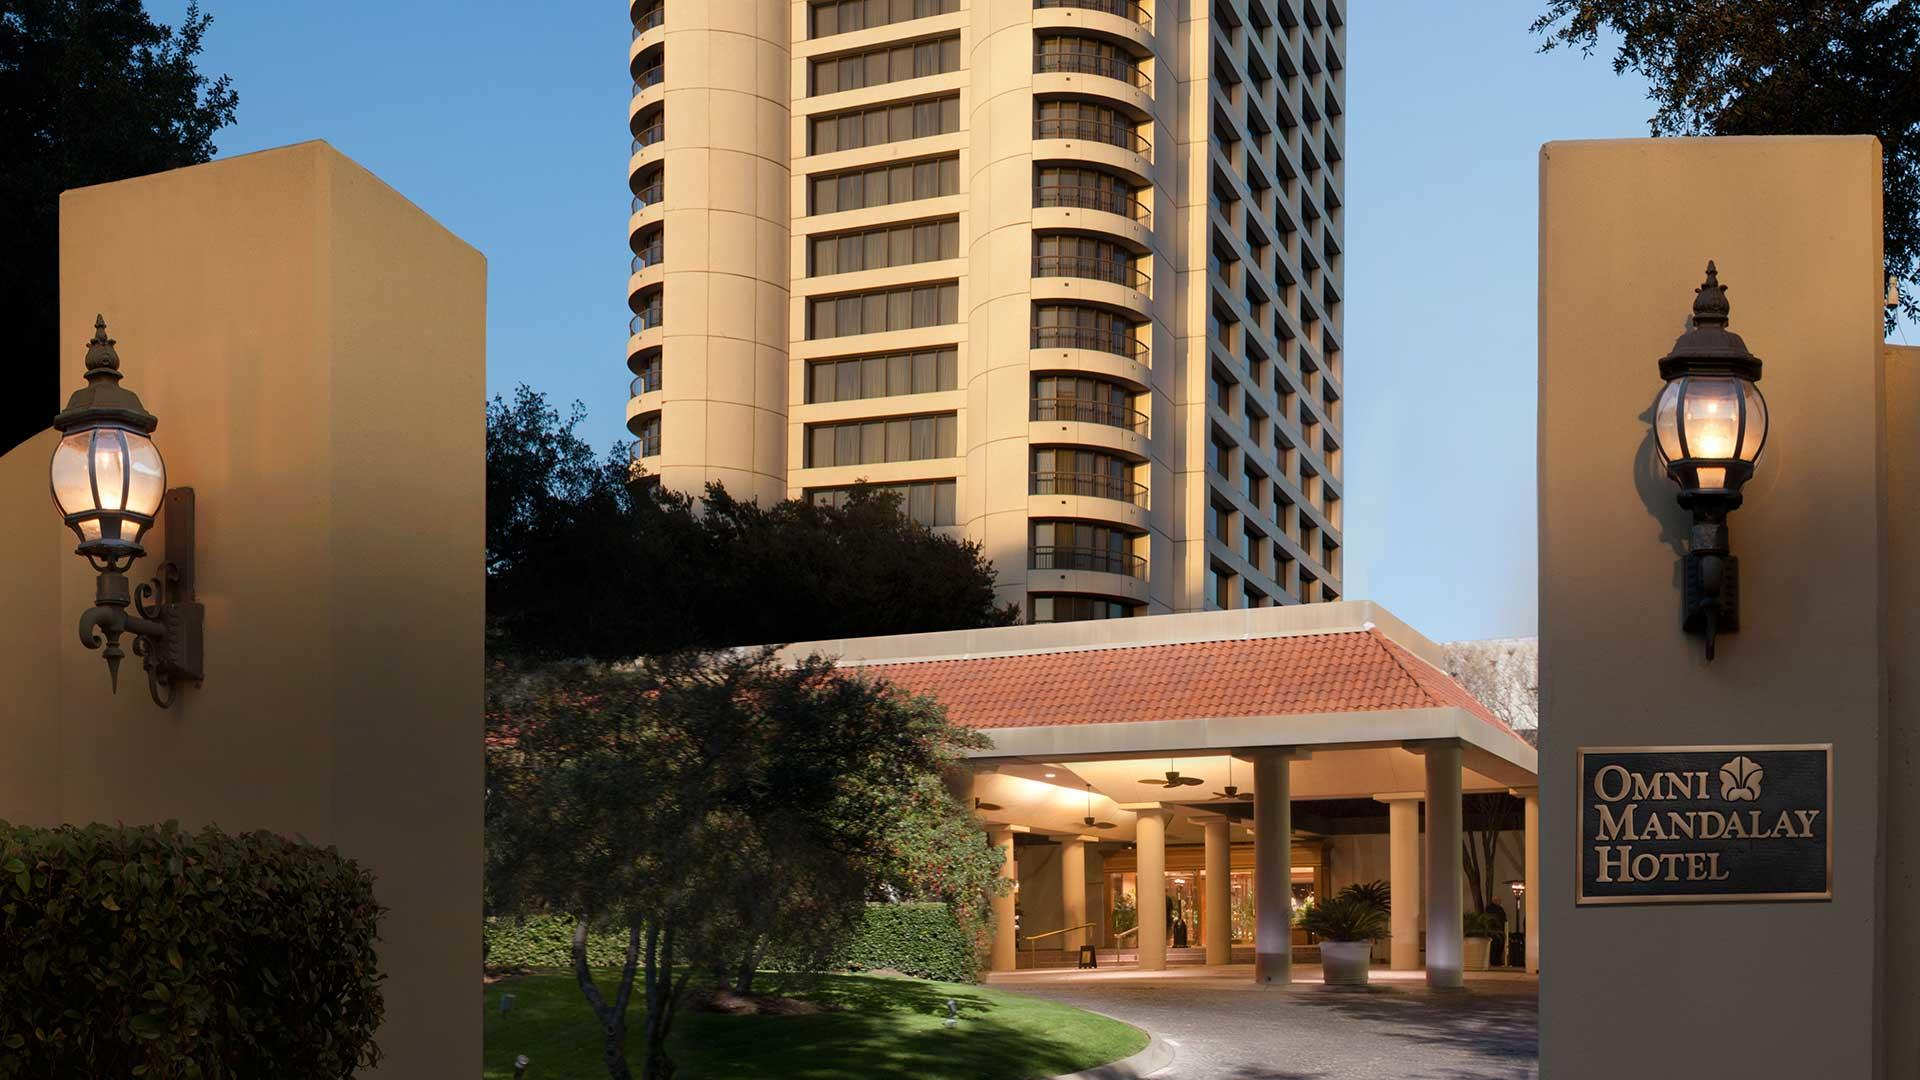 Omni Mandalay Hotel At Las Colinas Gha